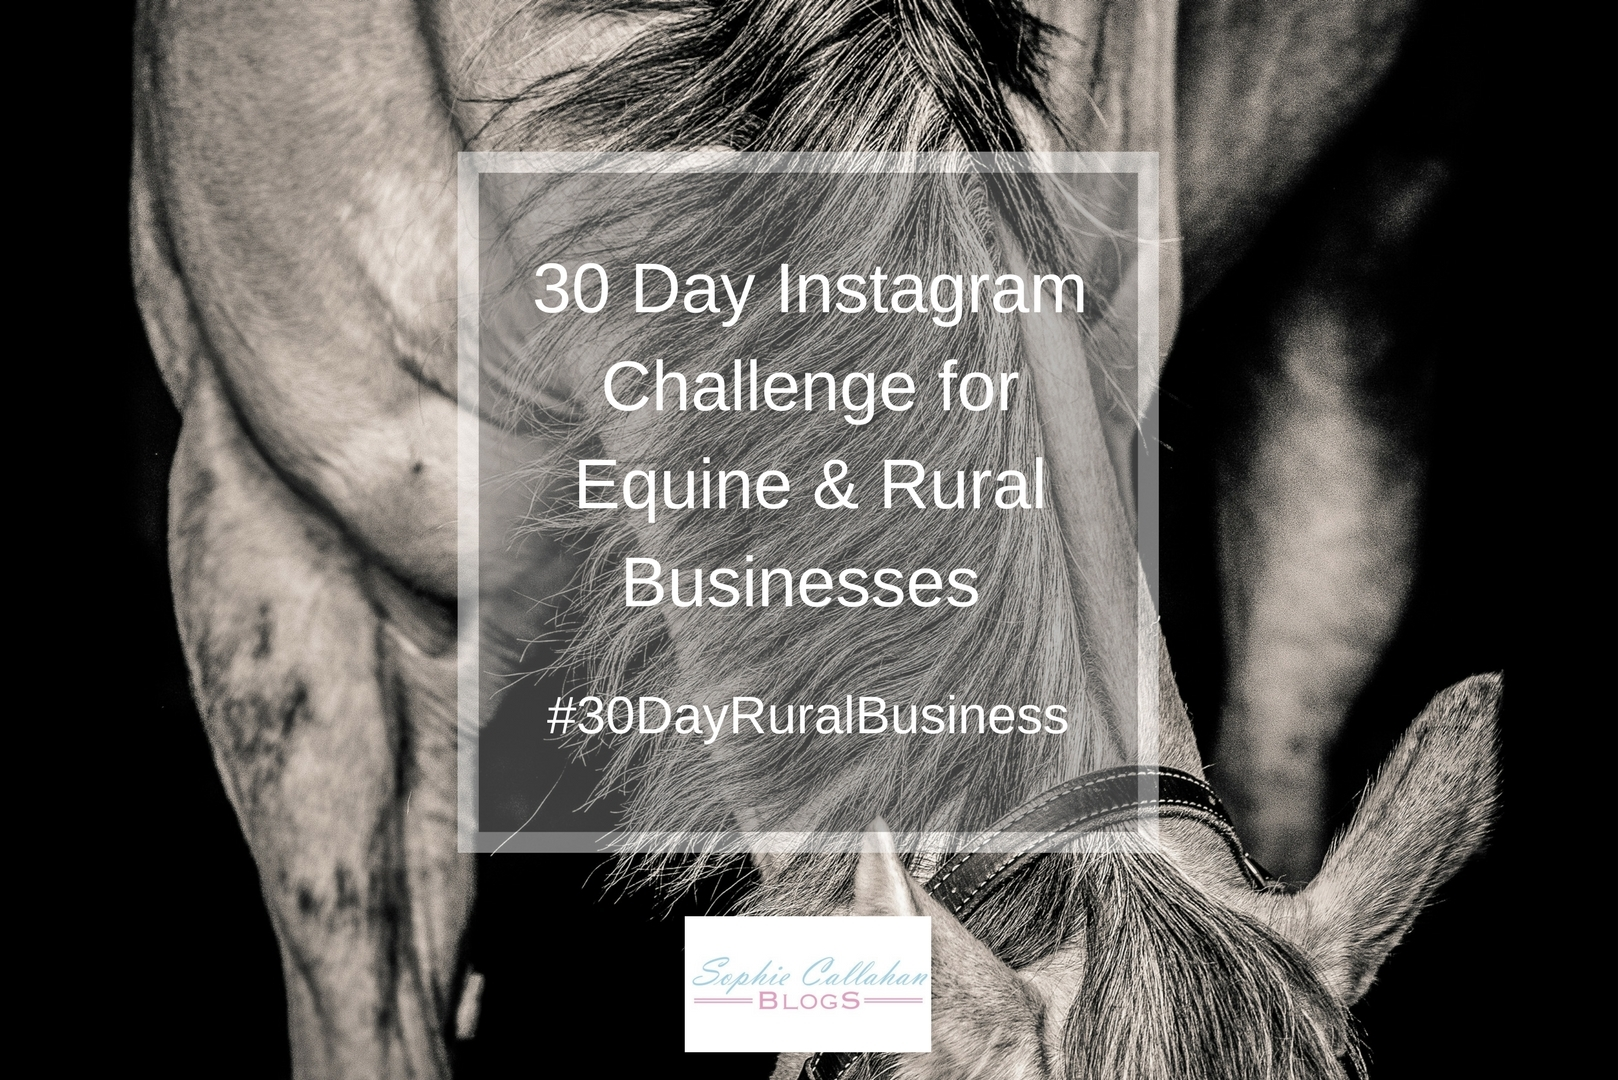 30 Day Instagram Challenge for Equine & Rural Businesses #30DayRuralBusiness - Equine Photographer and Country Lifestyle Blogger I via sophiecallahanblog.com I #lifestyleblogger #photography #countrylife